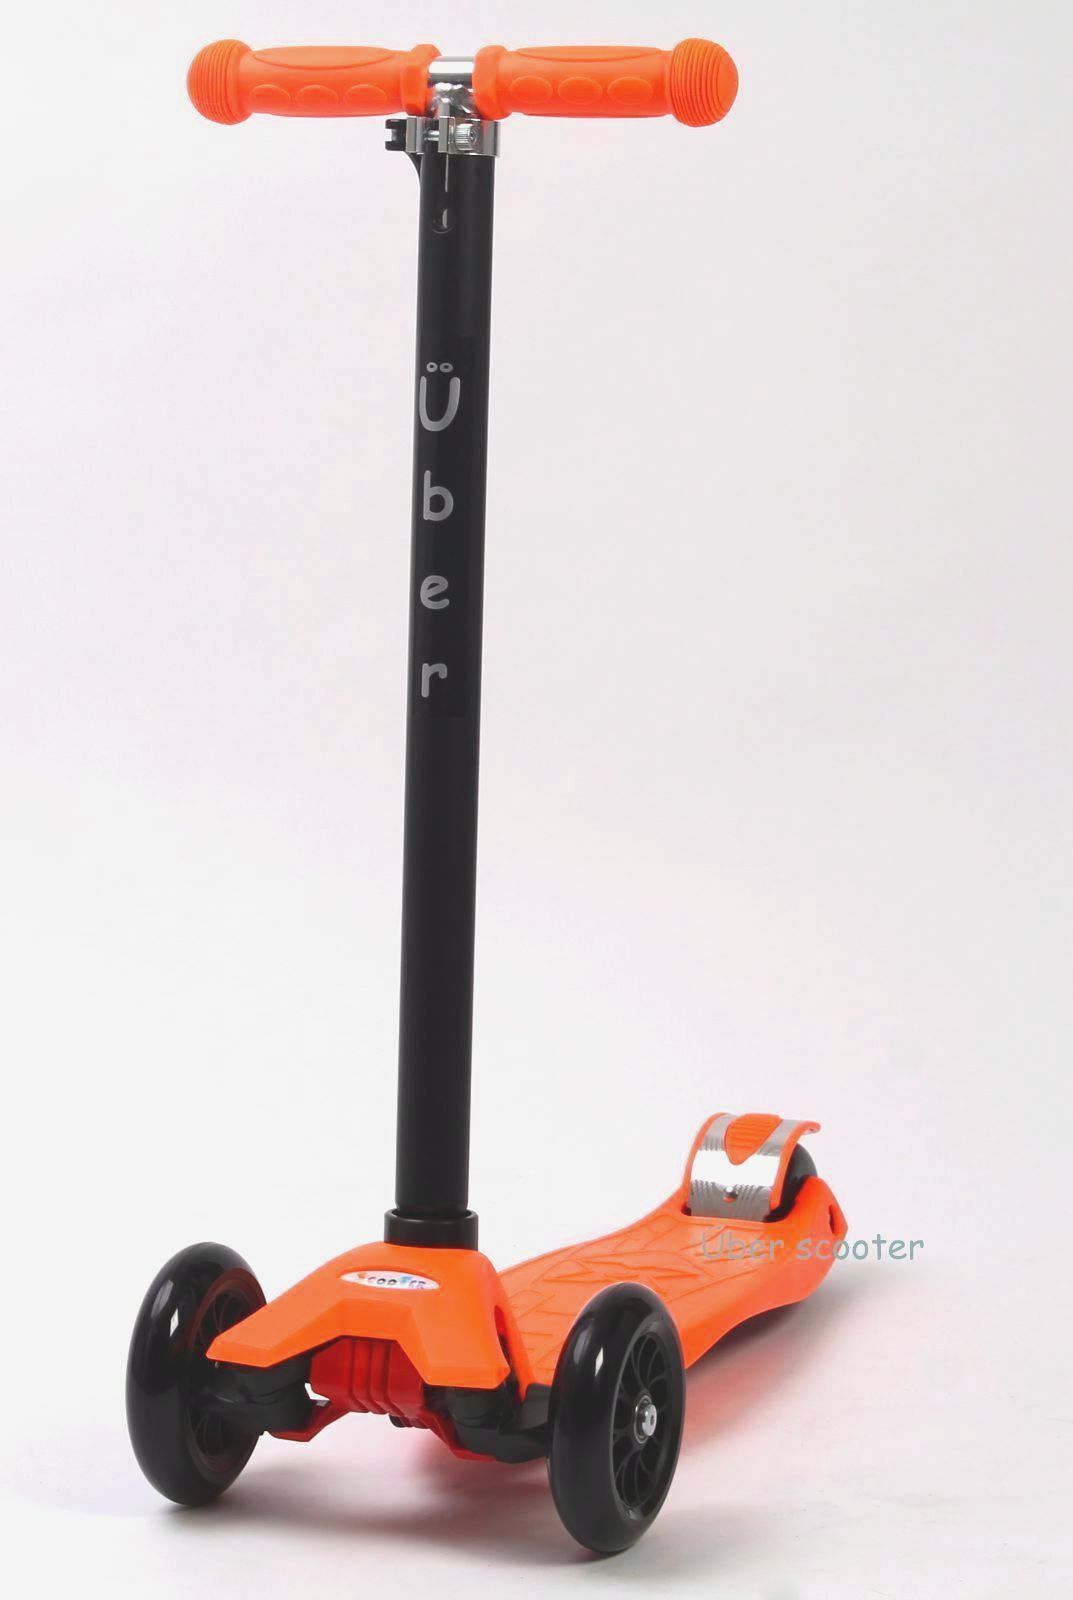 Maxi Scooter by Uber Scooter (Maxi micro style) Orange New, New, New, Boxed Tilt n Turn 6eb87b